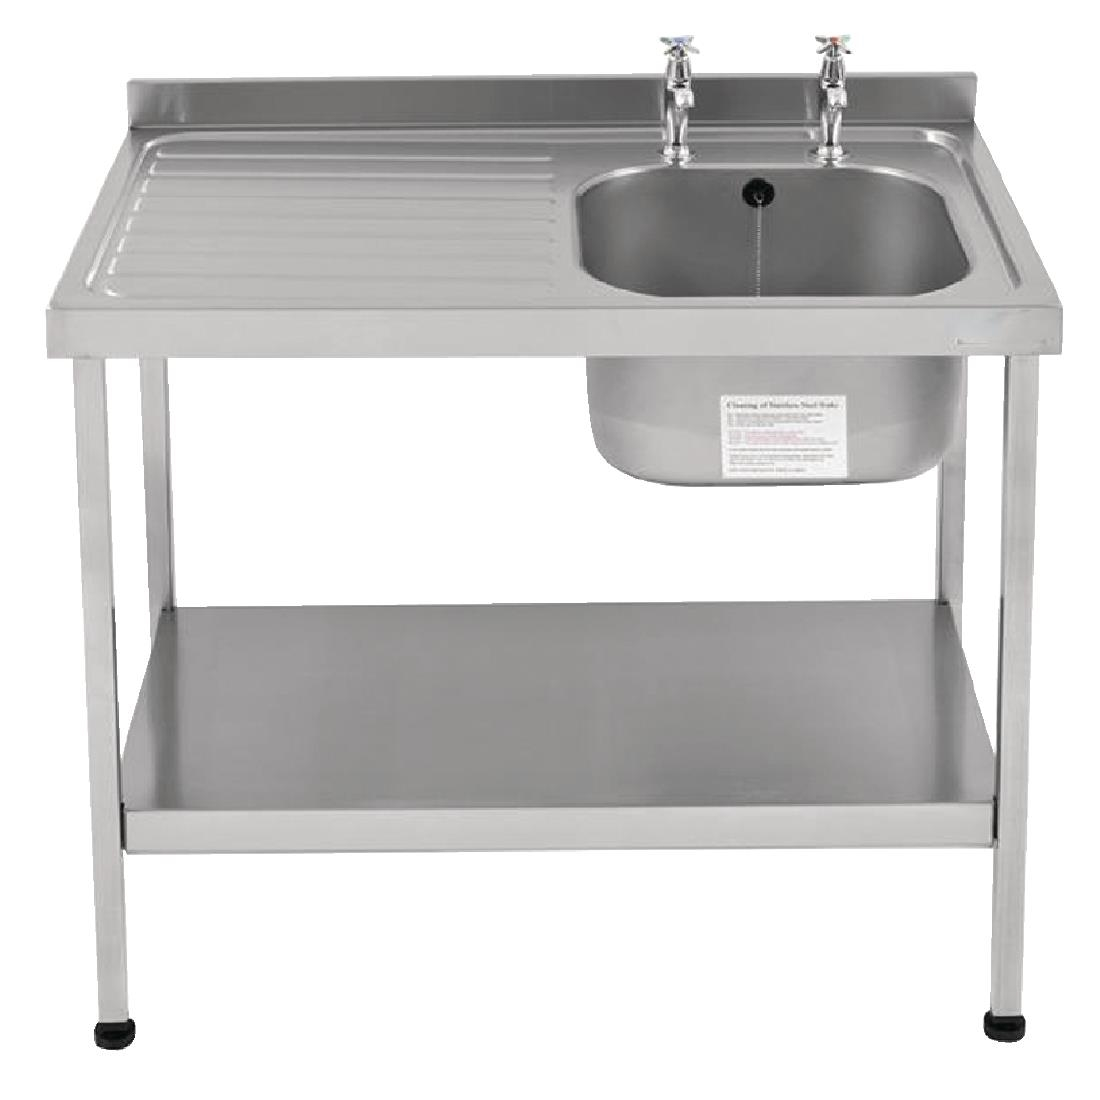 Image of Franke Sissons Self Assembly Stainless Steel Sink Left Hand Drainer 1200x600mm